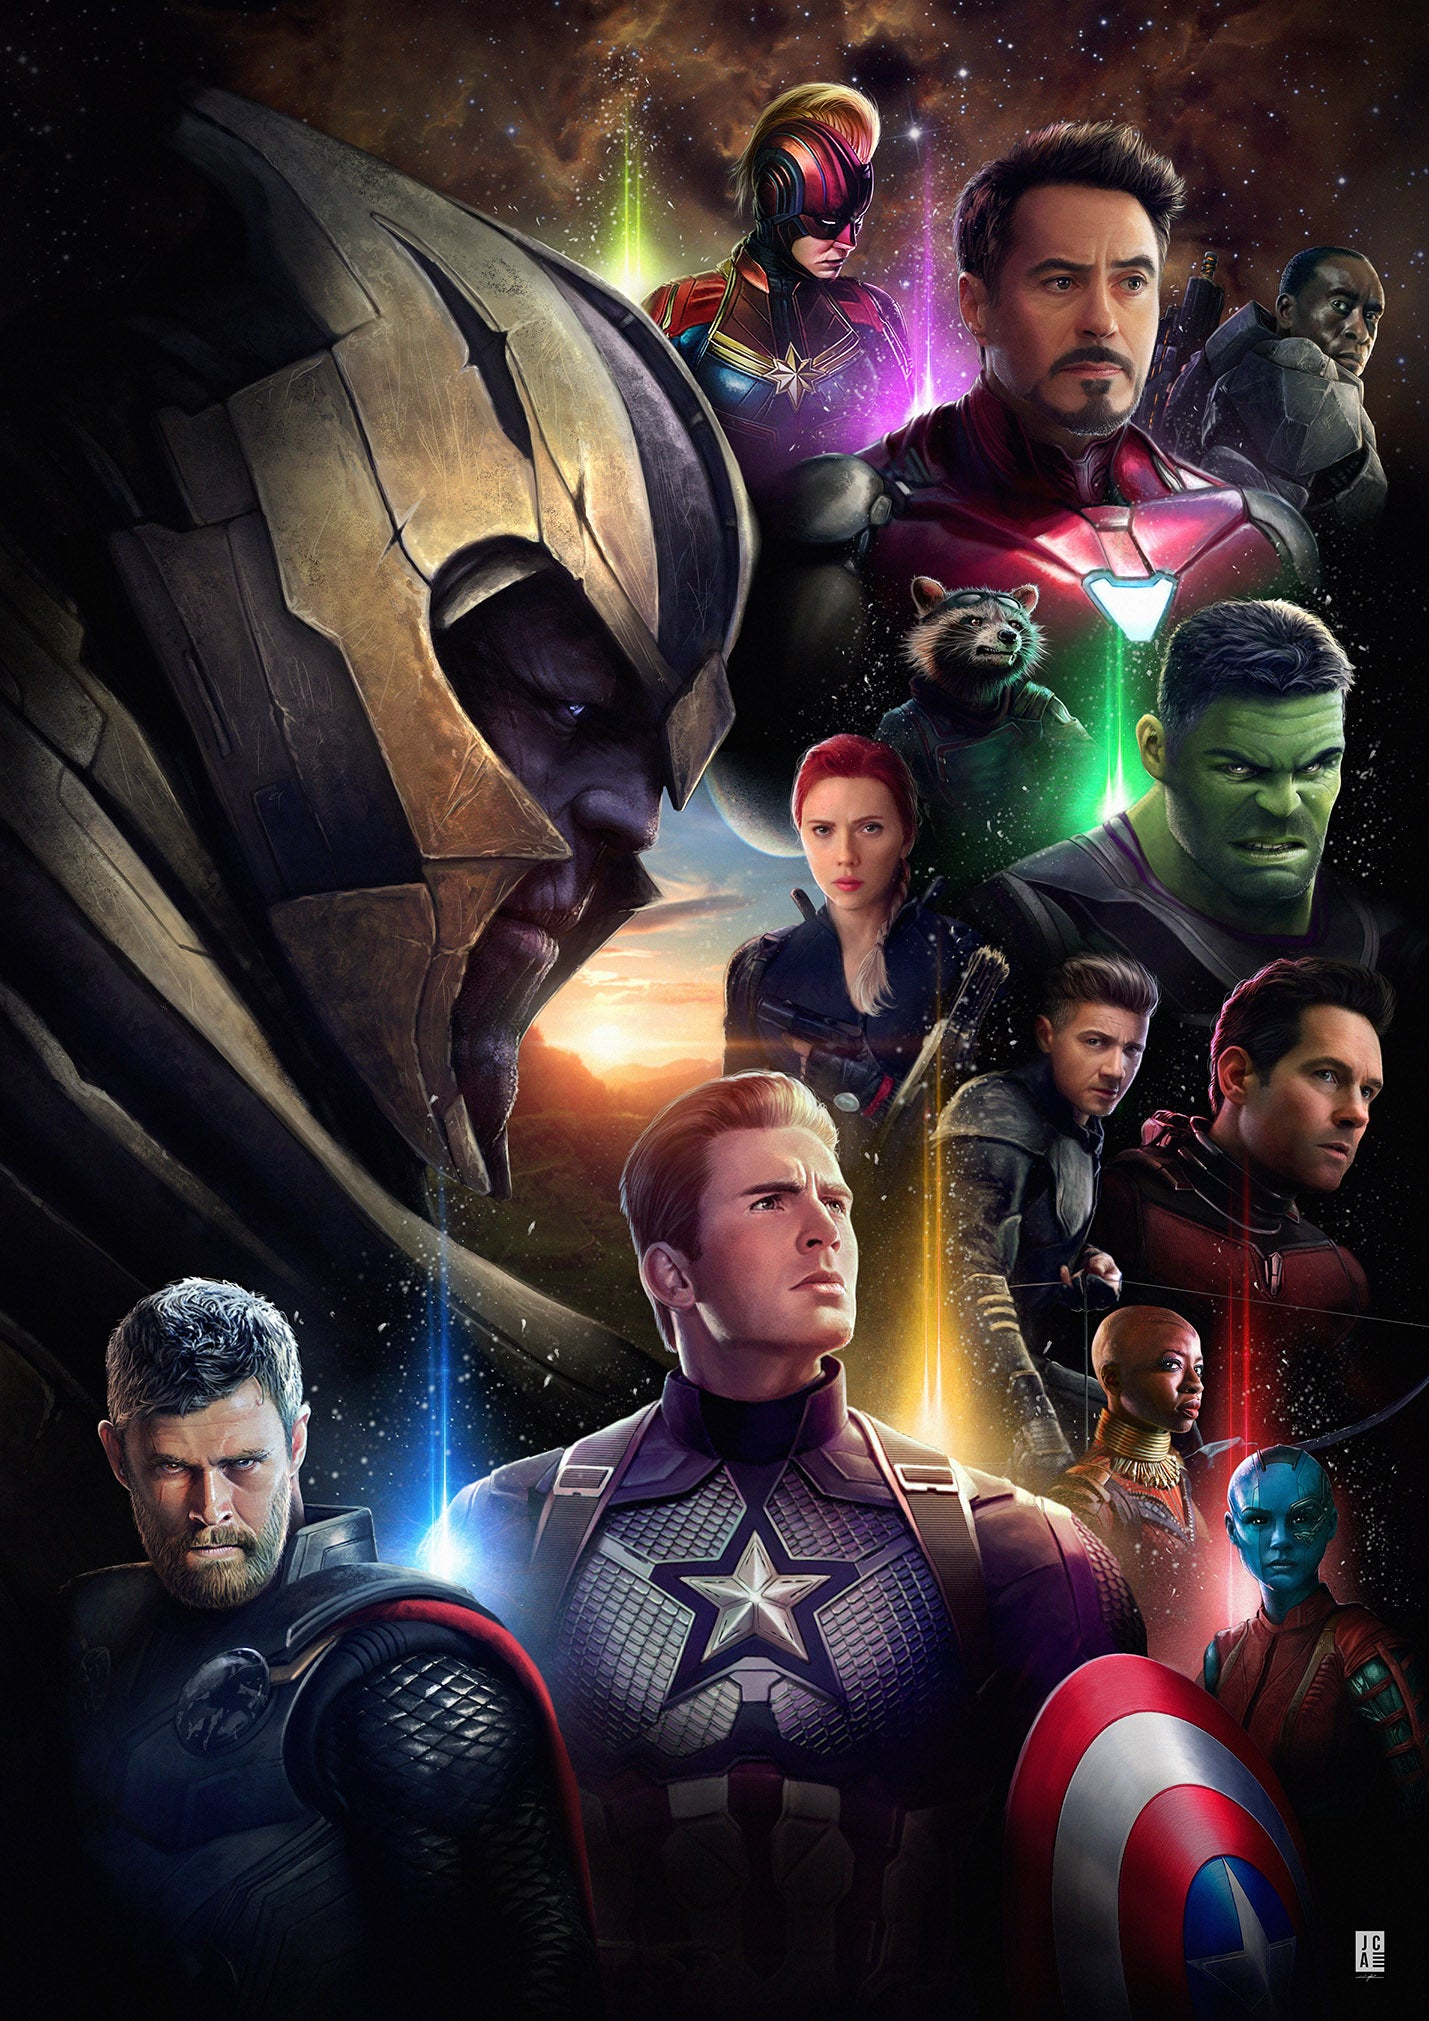 LIMITED EDITION PREMIUM CANVAS - Avengers Endgame